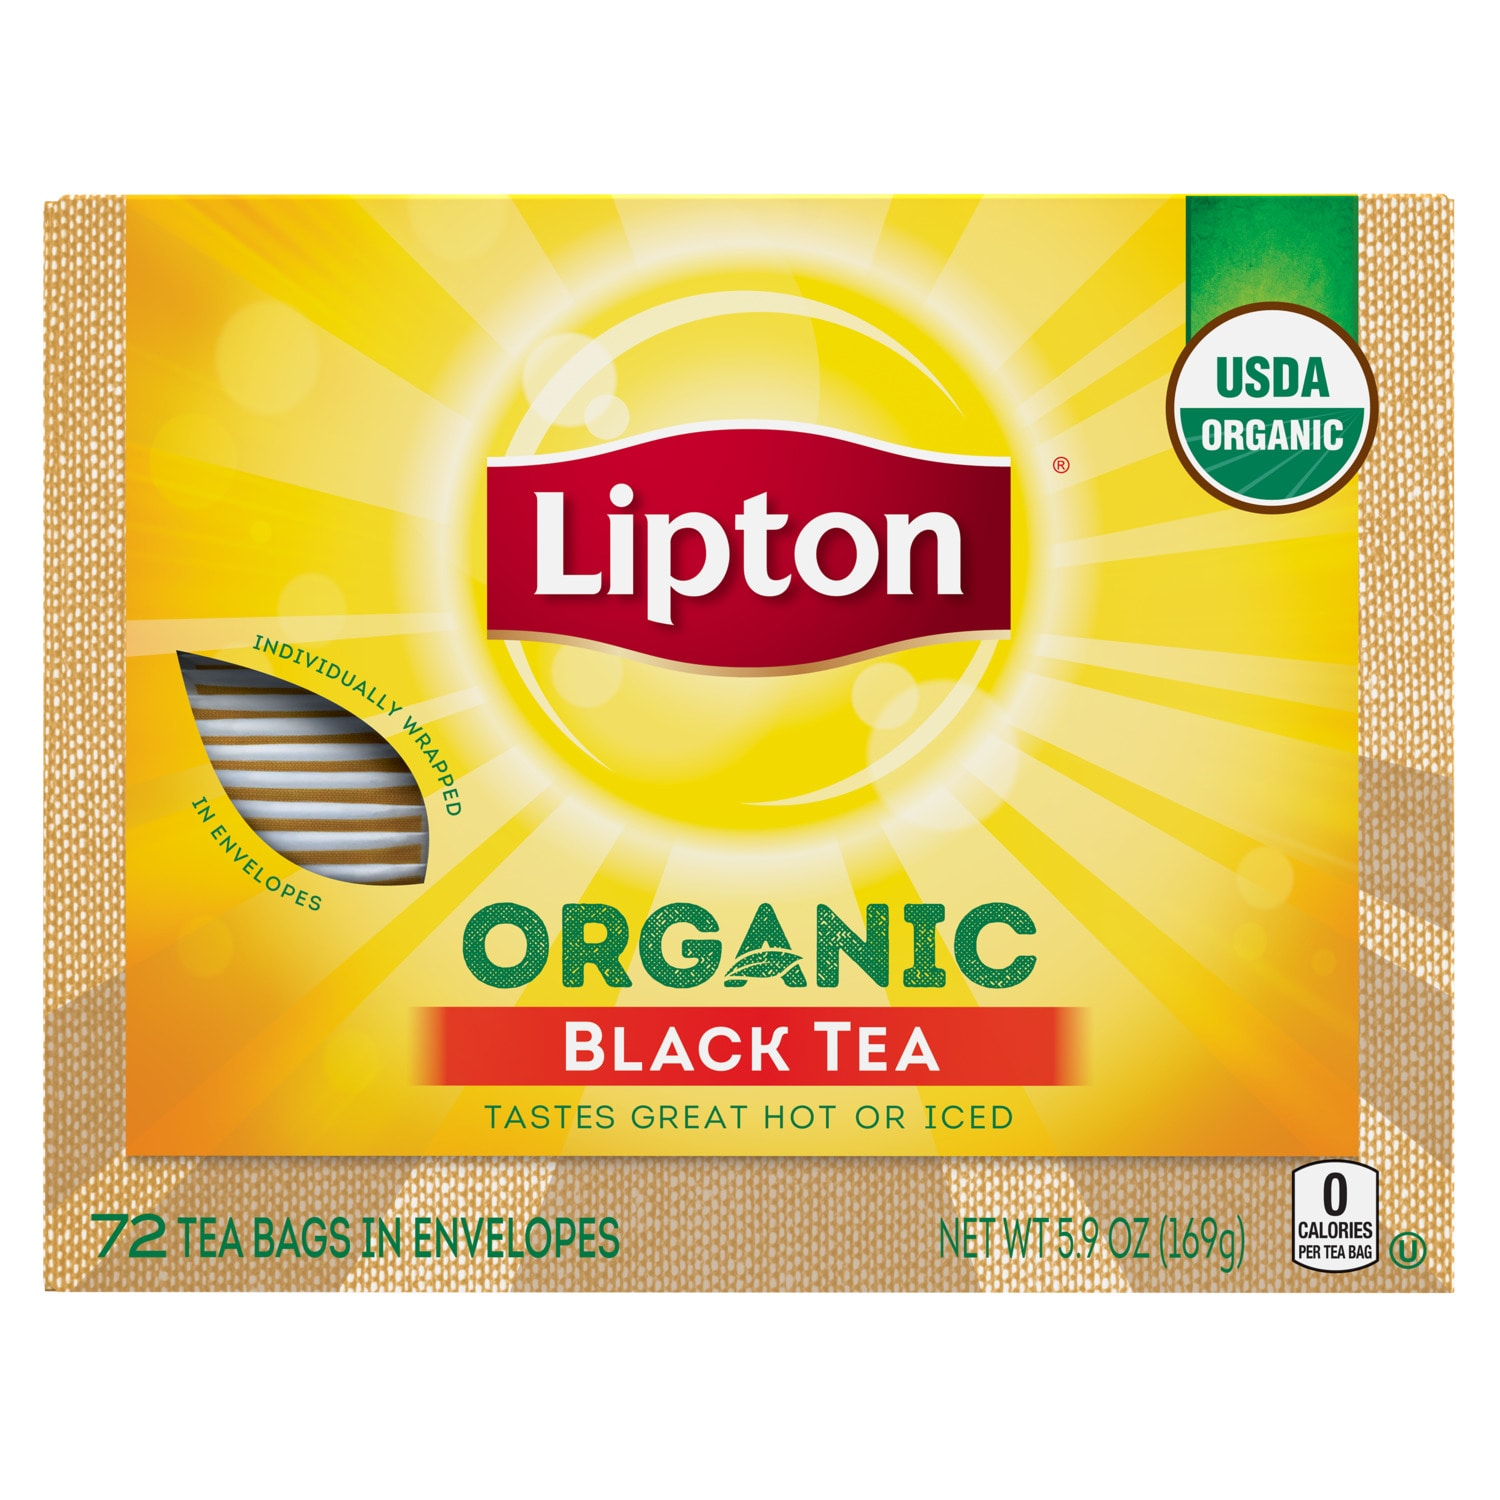 Organic Black Tea Lipton